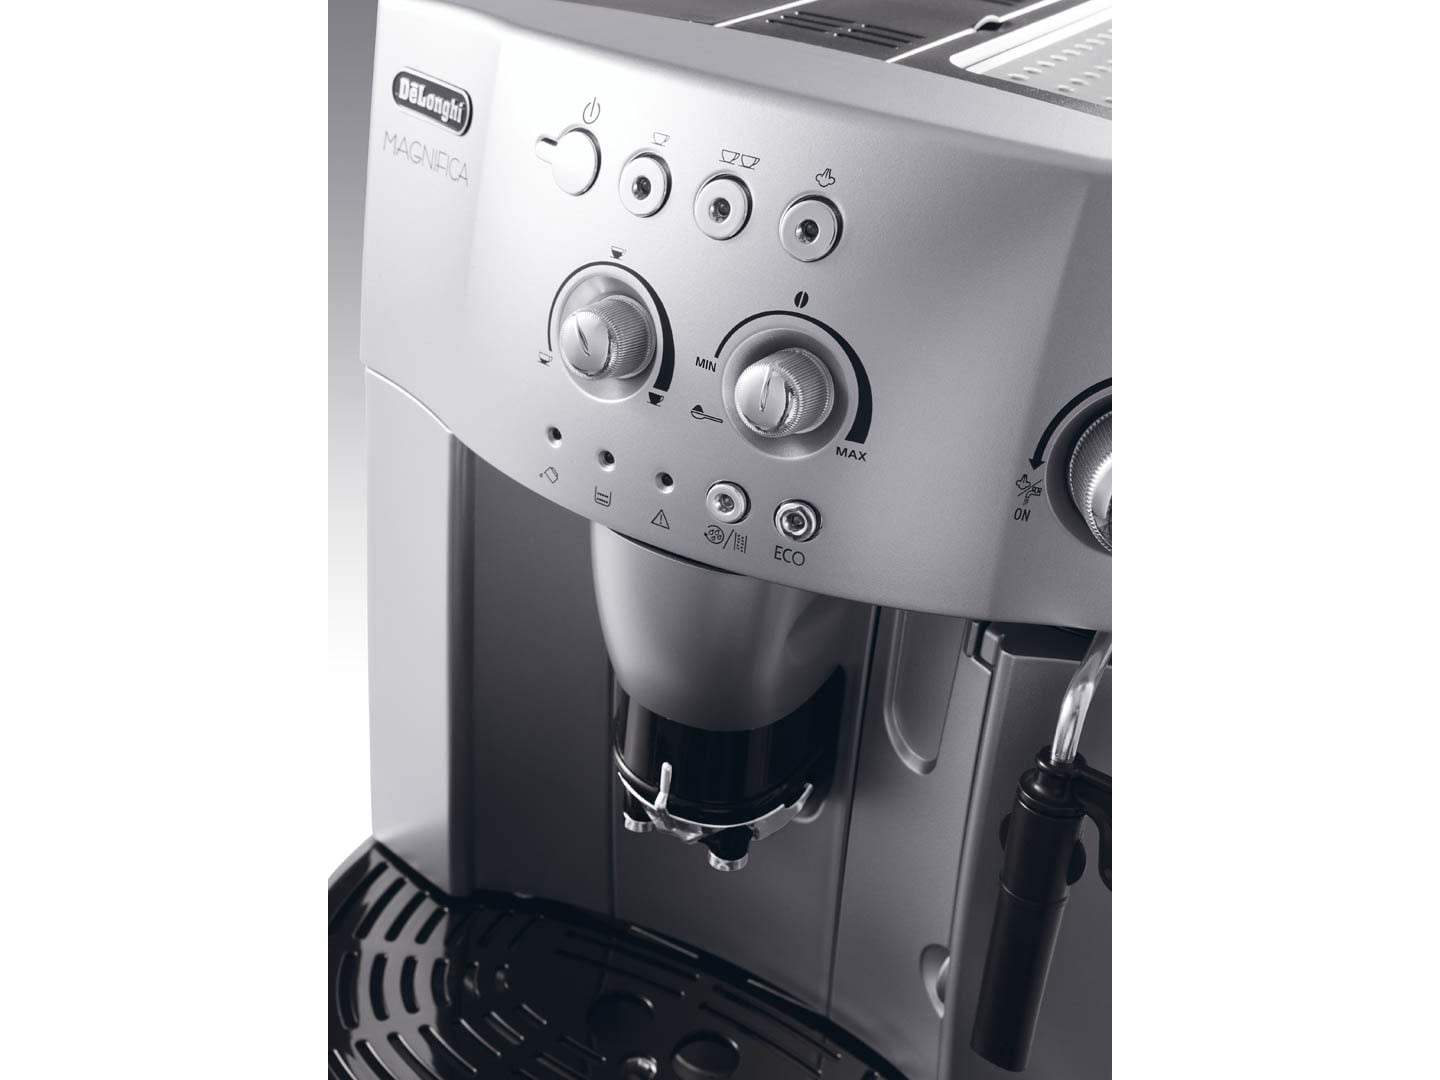 Delonghi Coffee Maker Ec330s User Guide : DELONGHI MAGNIFICA 4400 MANUAL PDF FREE DOWNLOAD (bonus: datta charitra in telugu PDF)